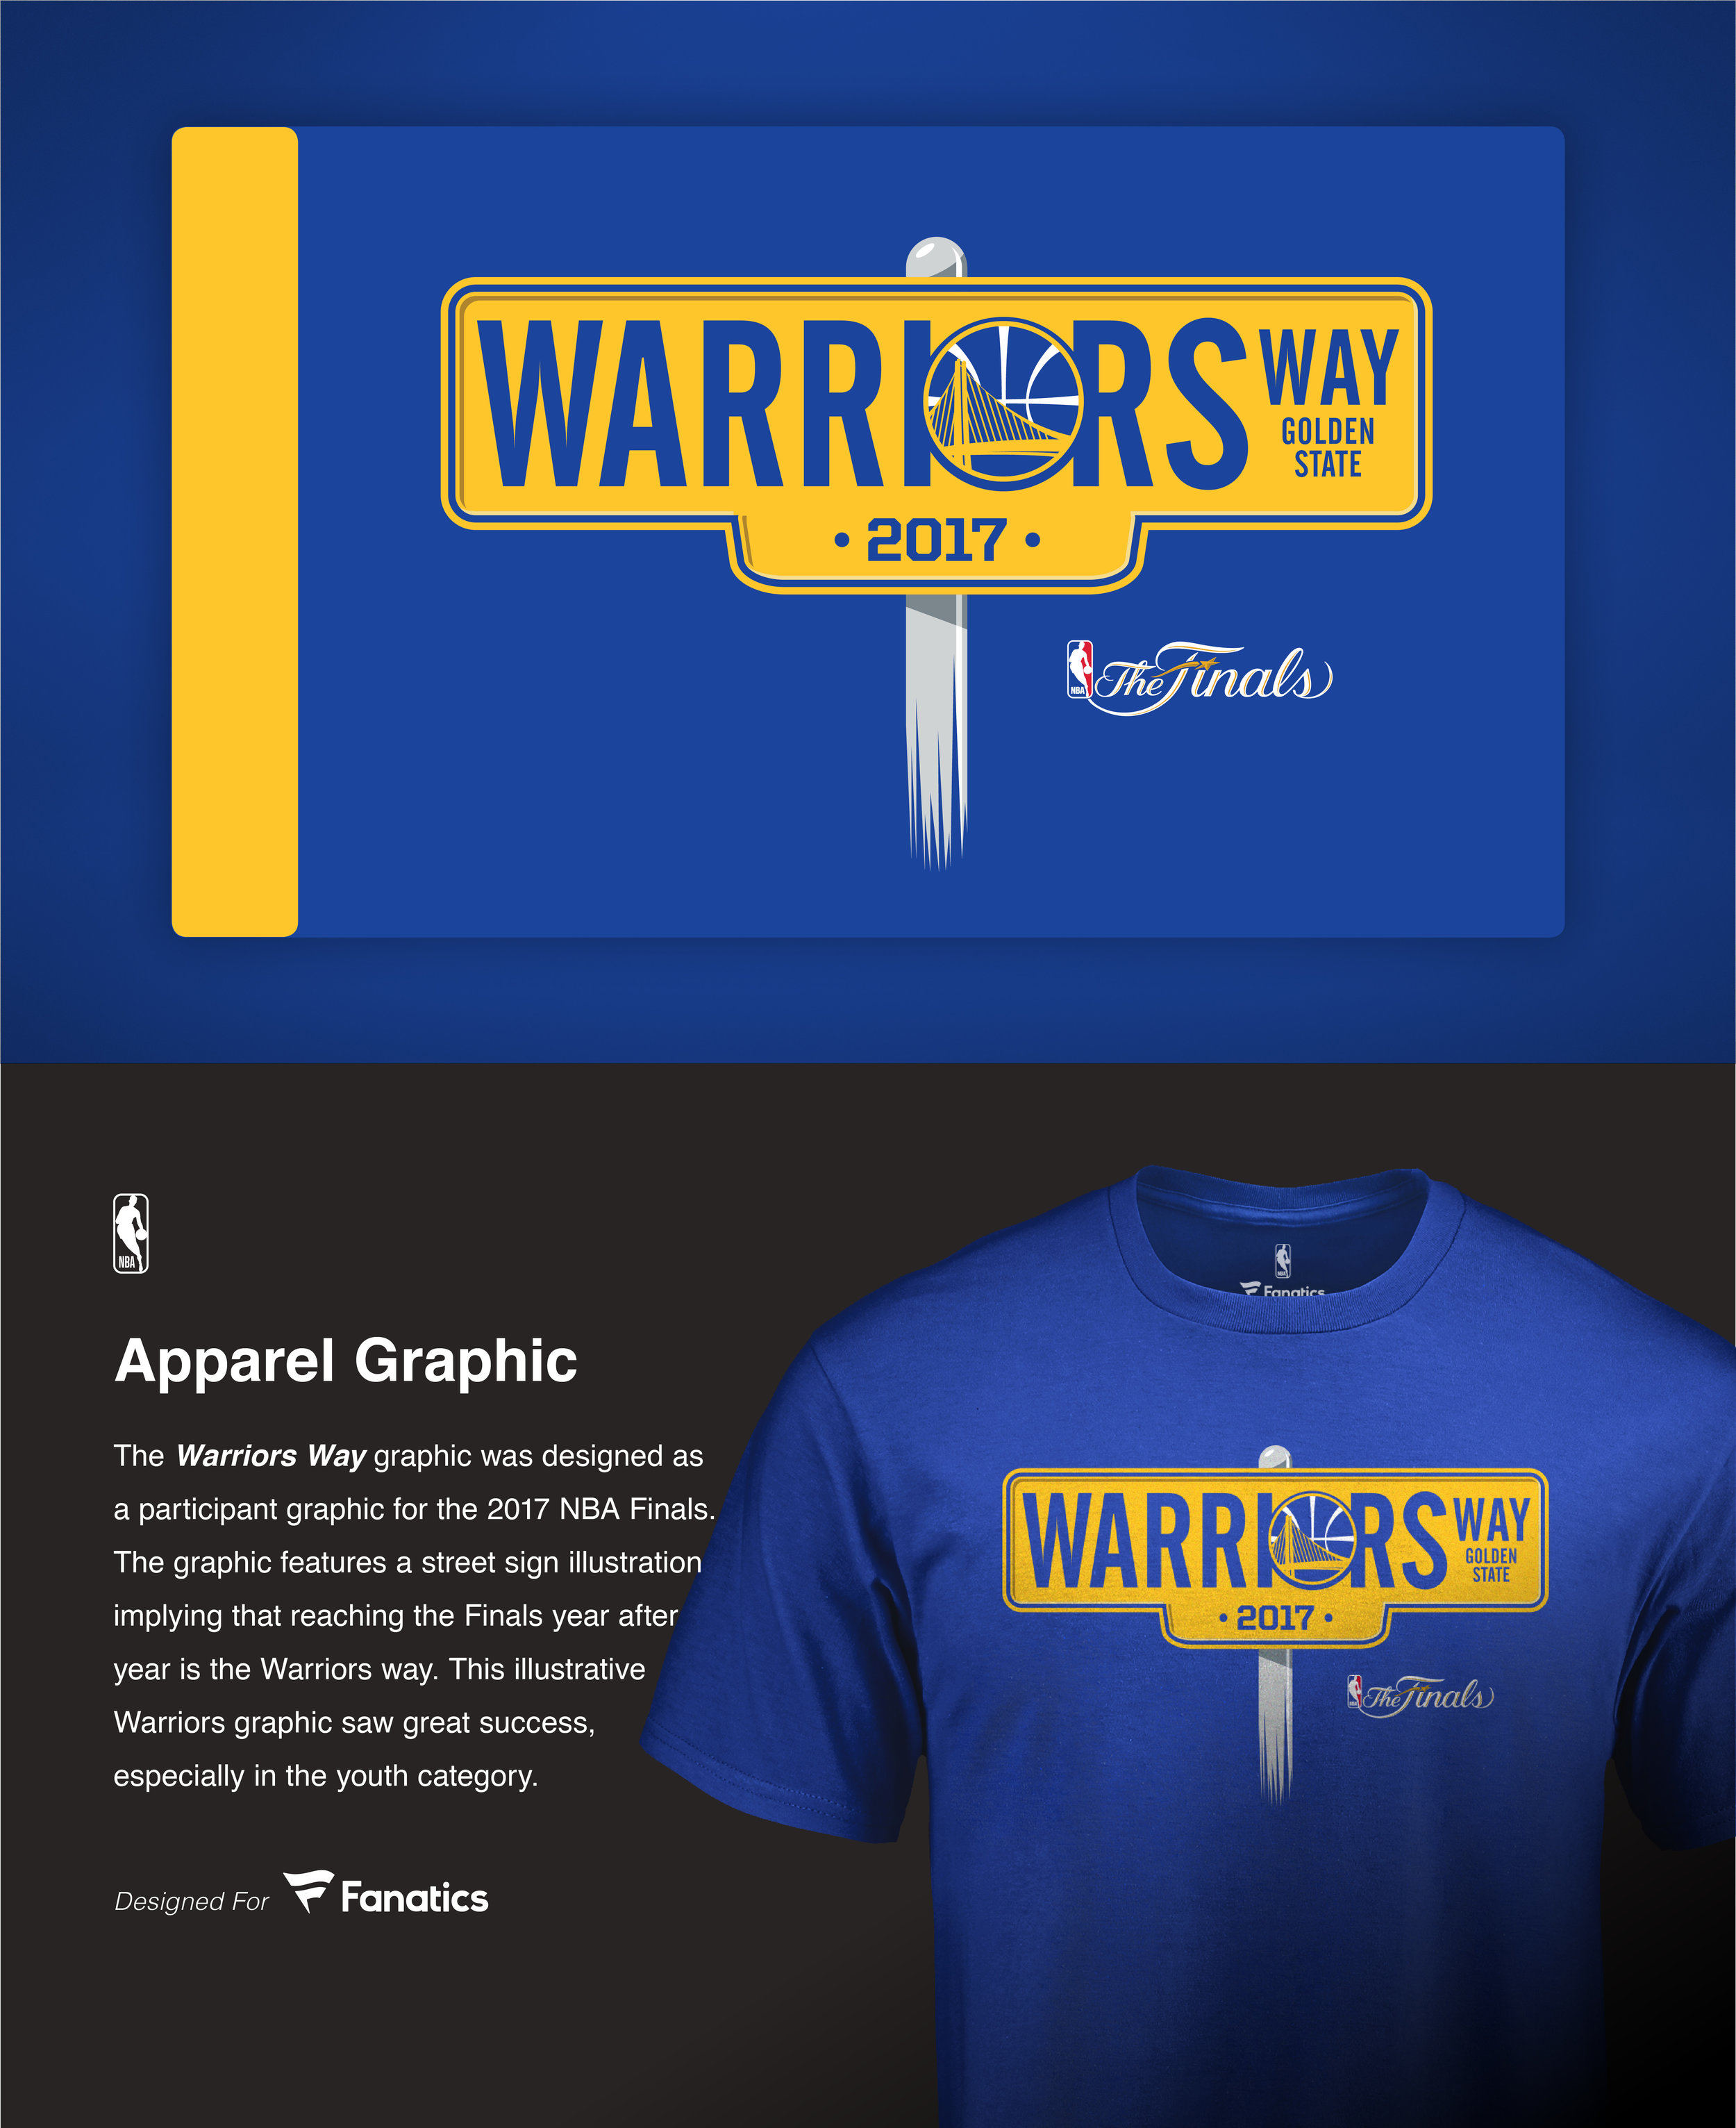 WarriorsWay_NBA_Finals_Graphic_Anthony_Mejia.jpg